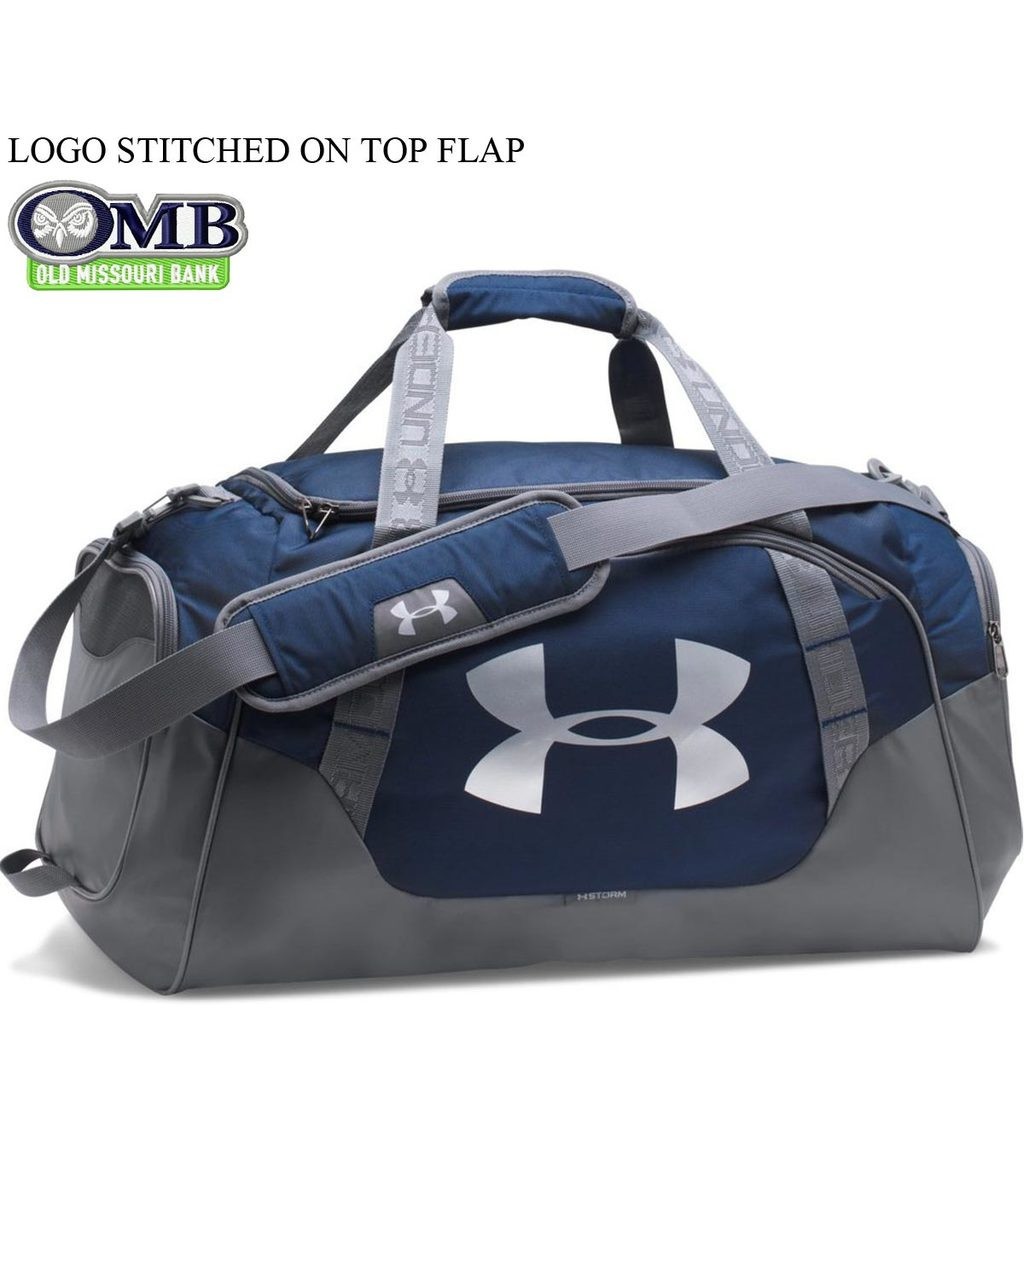 74f6540d3363 ... OMB UNDER ARMOUR Undeniable Duffle Medium - NEW! Loading zoom